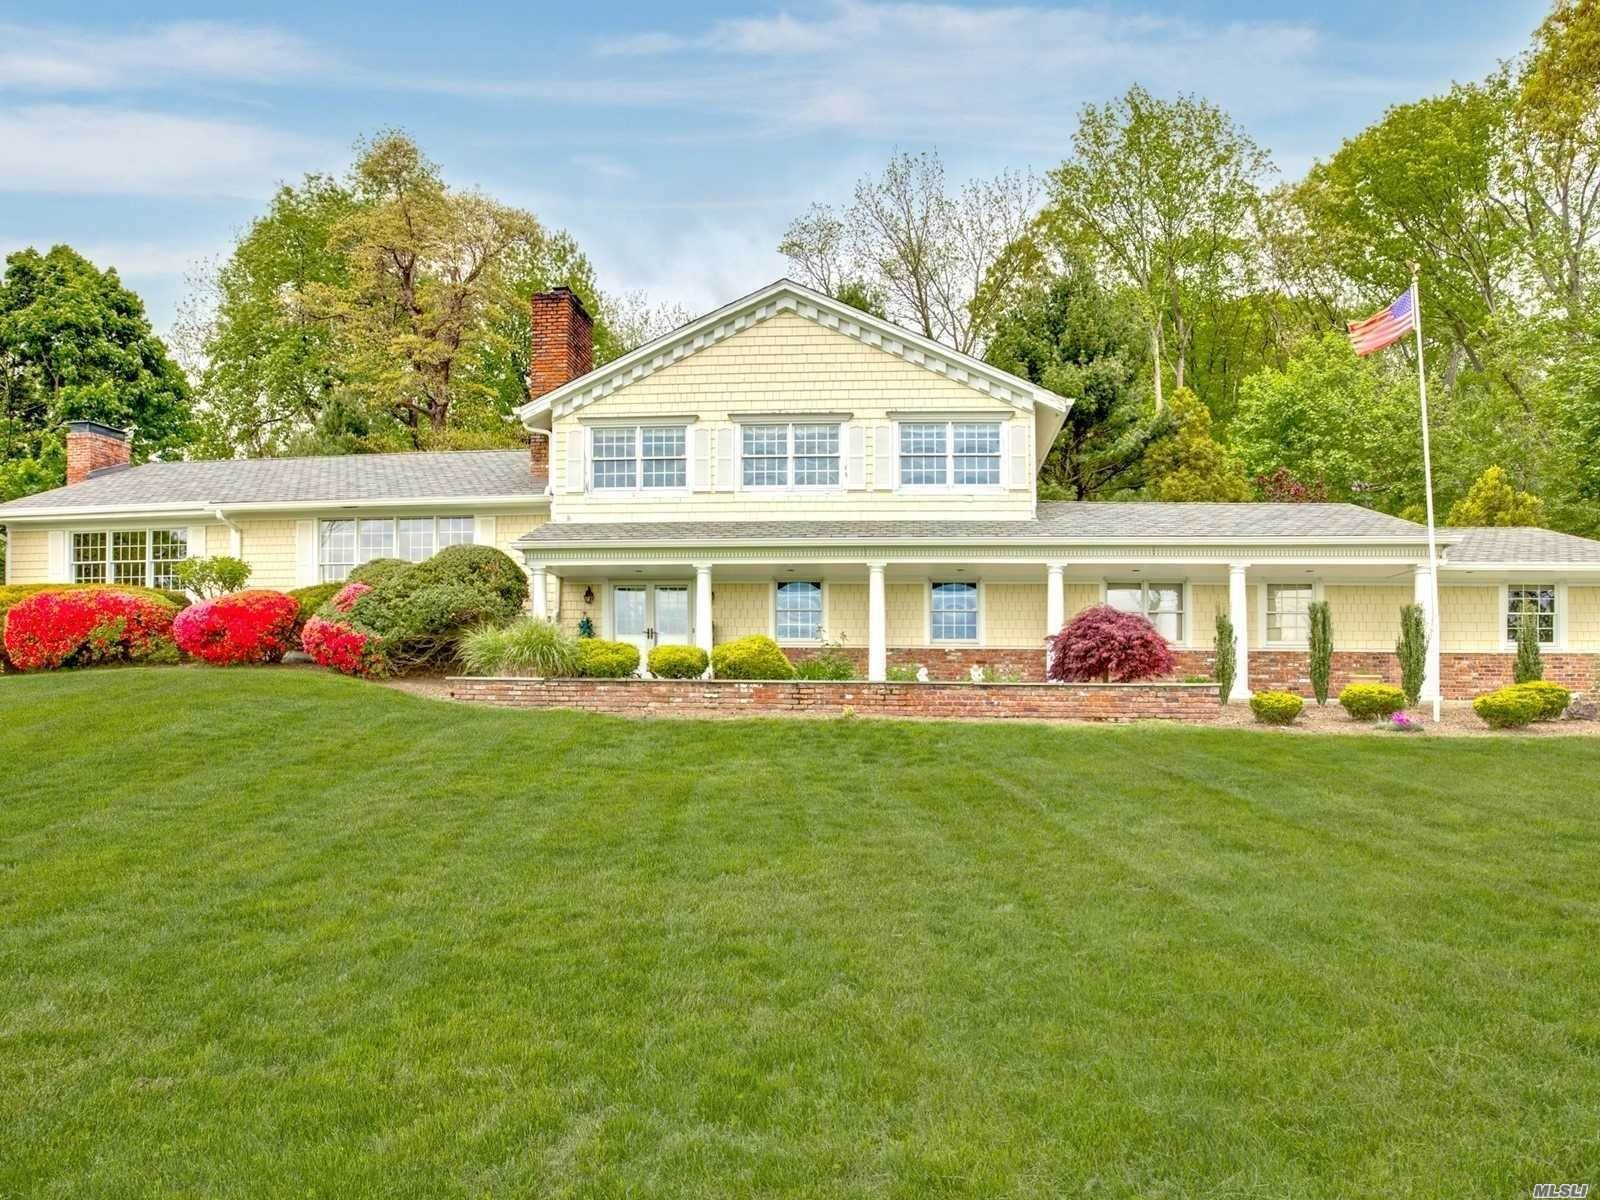 Residential for Sale at 85 Lloyd Harbor Road, Lloyd Neck, NY 11743 Lloyd Neck, New York 11743 United States